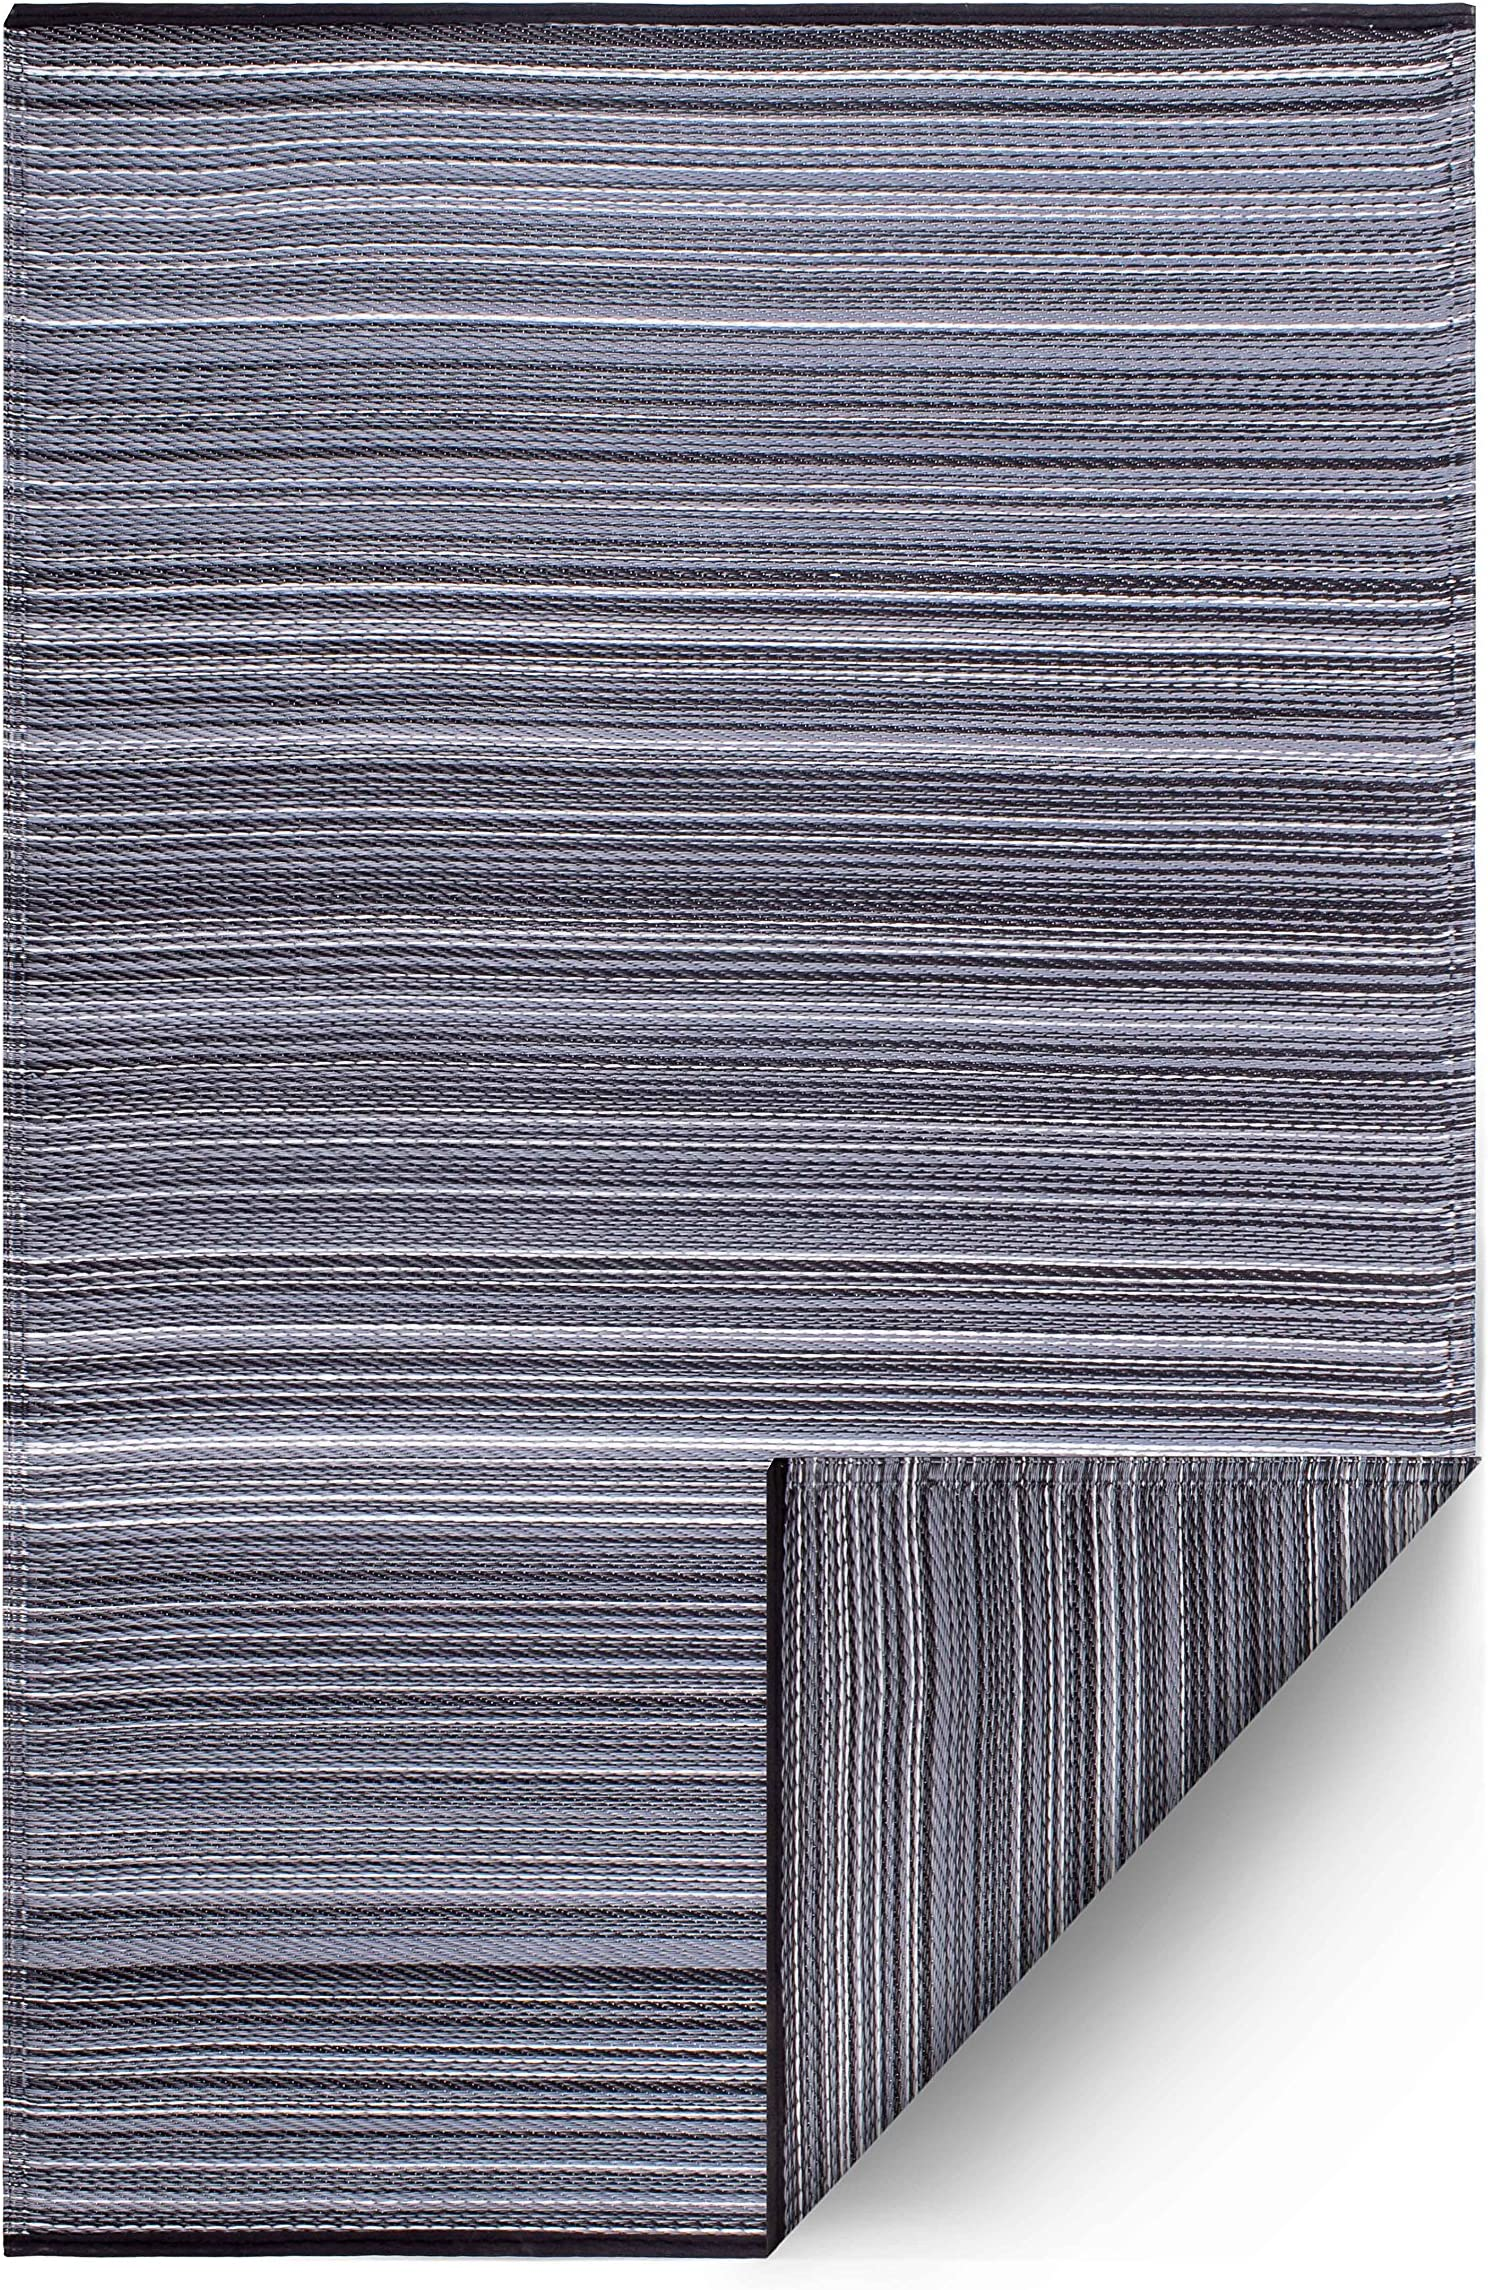 Fab Habitat Reversible Rugs | Indoor or Outdoor Use | Stain Resistant, Easy to Clean Weather Resistant Floor Mats | Cancun - Midnight, 6' x 9'